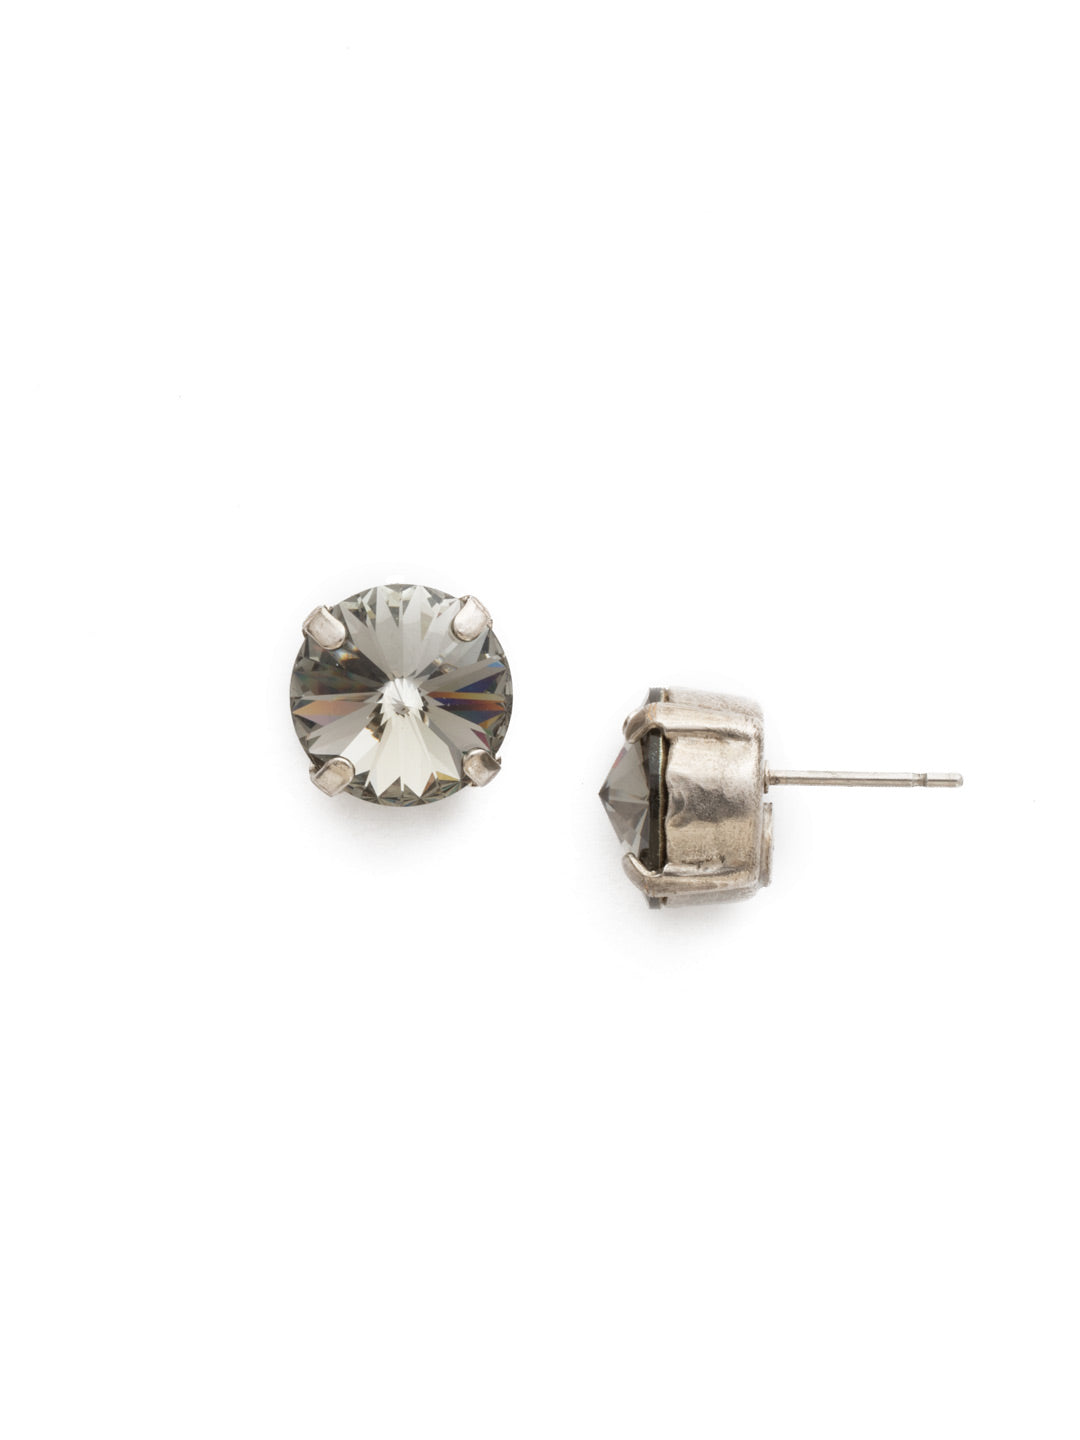 Round Crystal Stud Earrings - ECM14ASBD